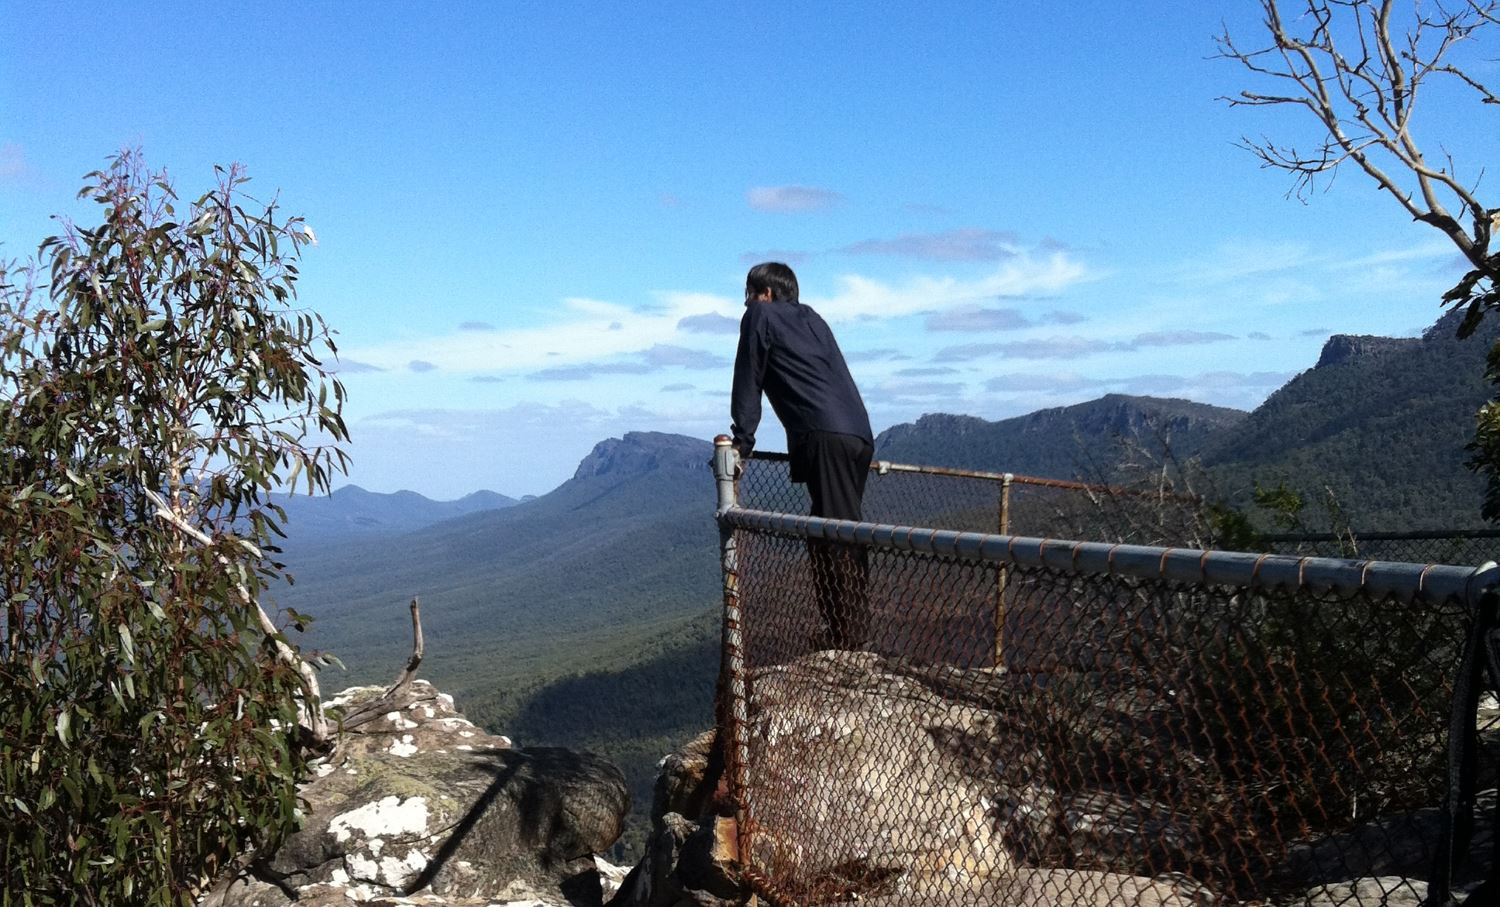 The Pinnacle Walk - Looking out across the magnificent Grampians